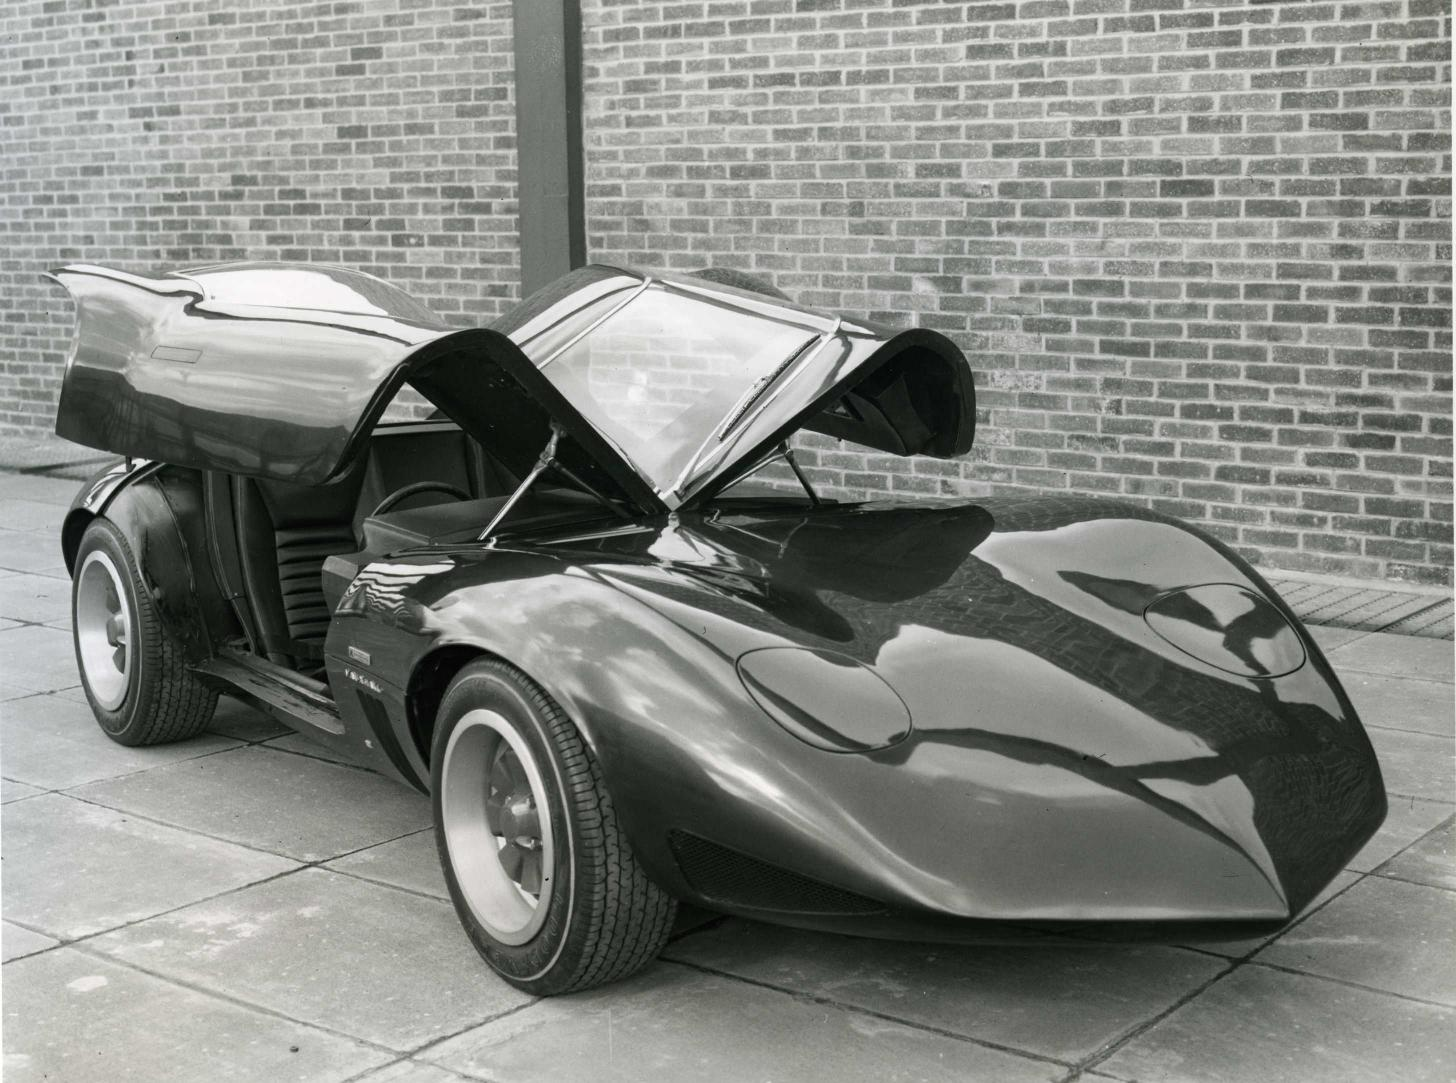 Automobiles you don't see everyday... - Page 3 1966_Vauxhall_XVR_Concept_05